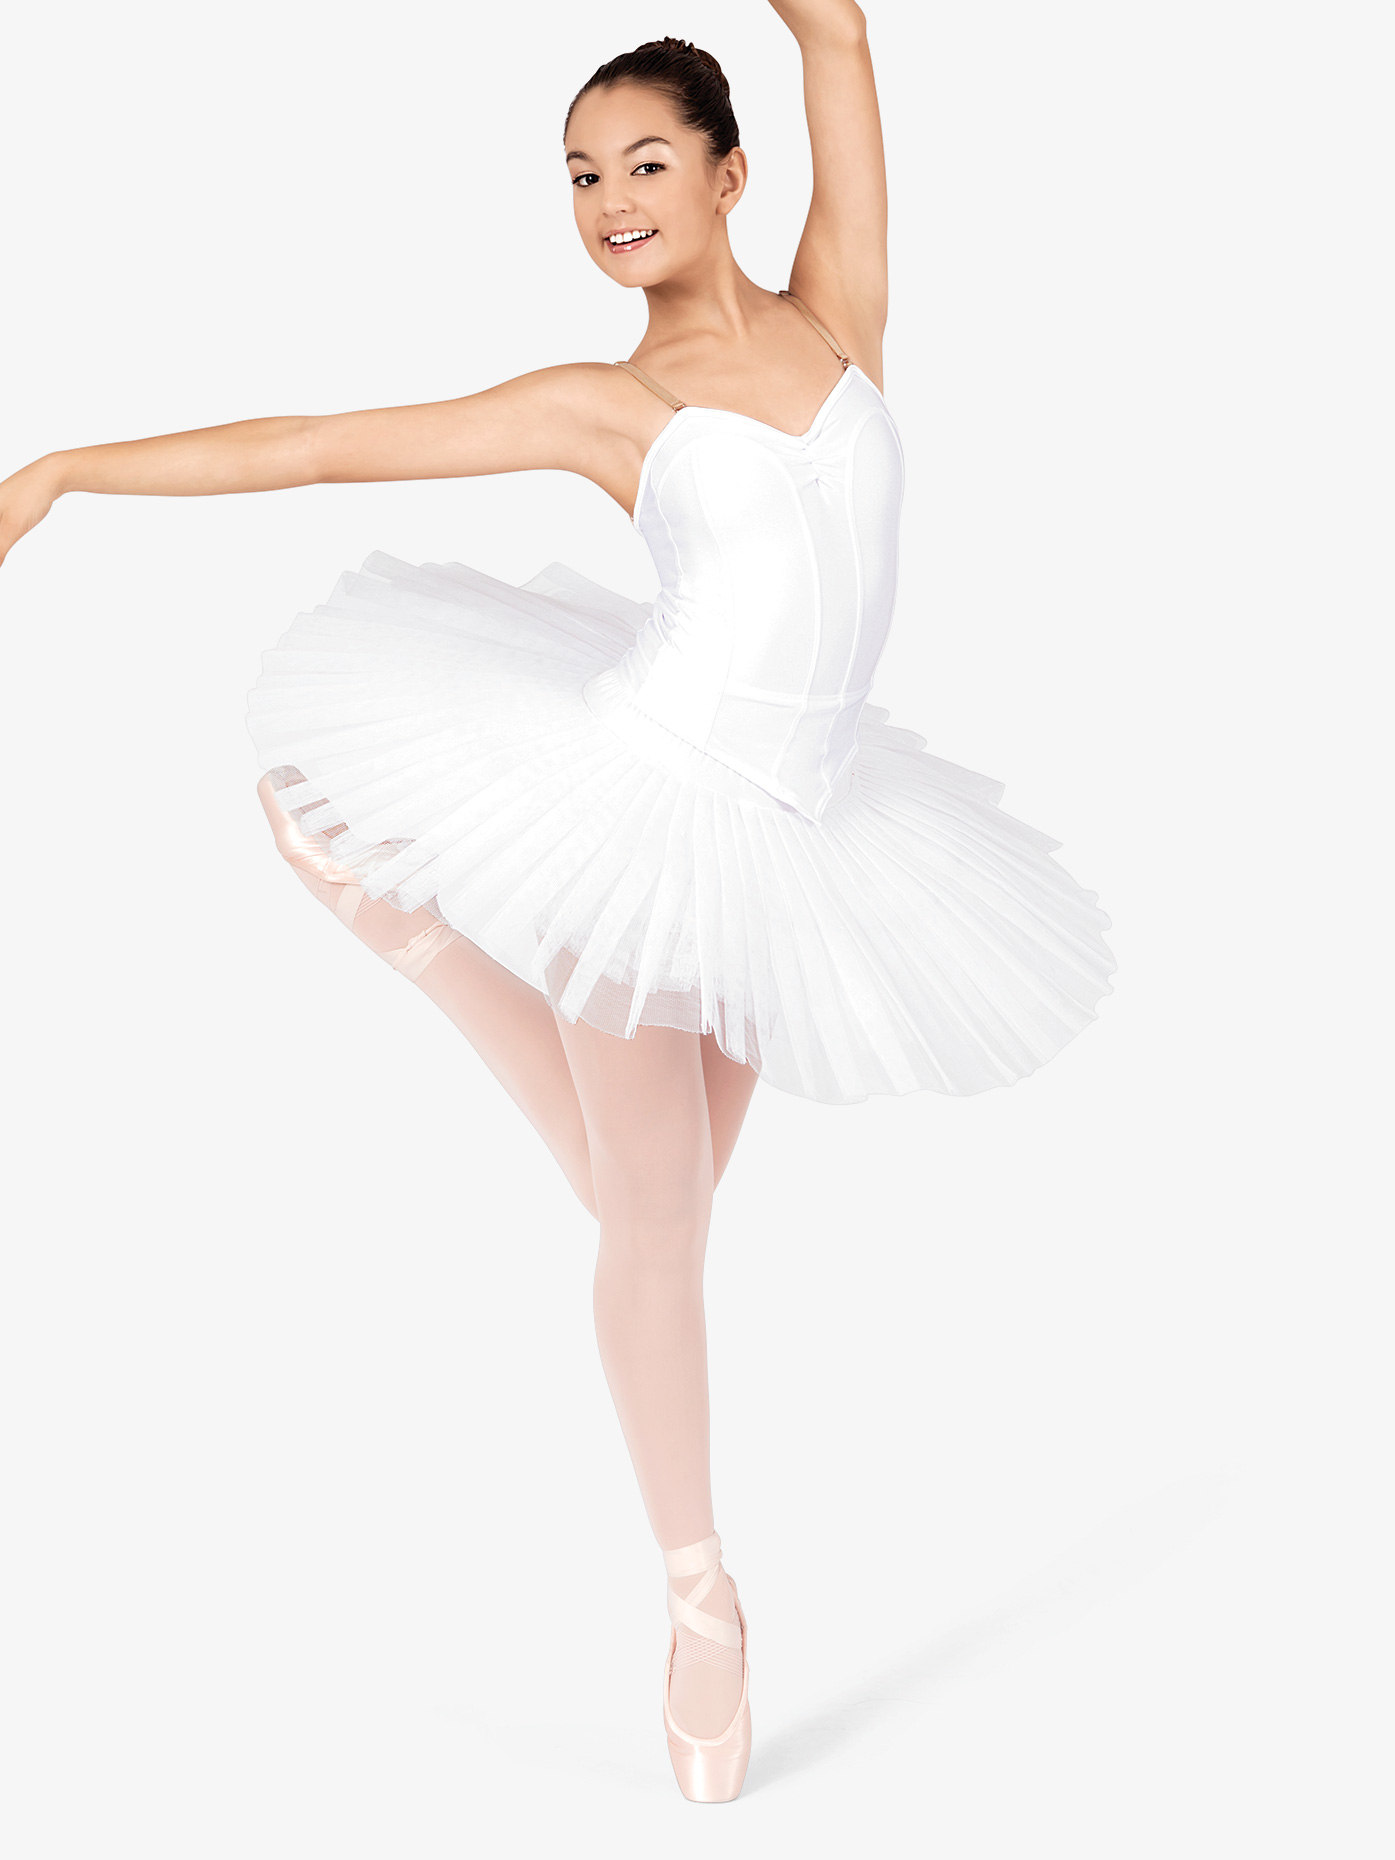 fd7606ffe5 Adult/Child Professional Tutu - Tutus & Skirts | Natalie N5835 ...